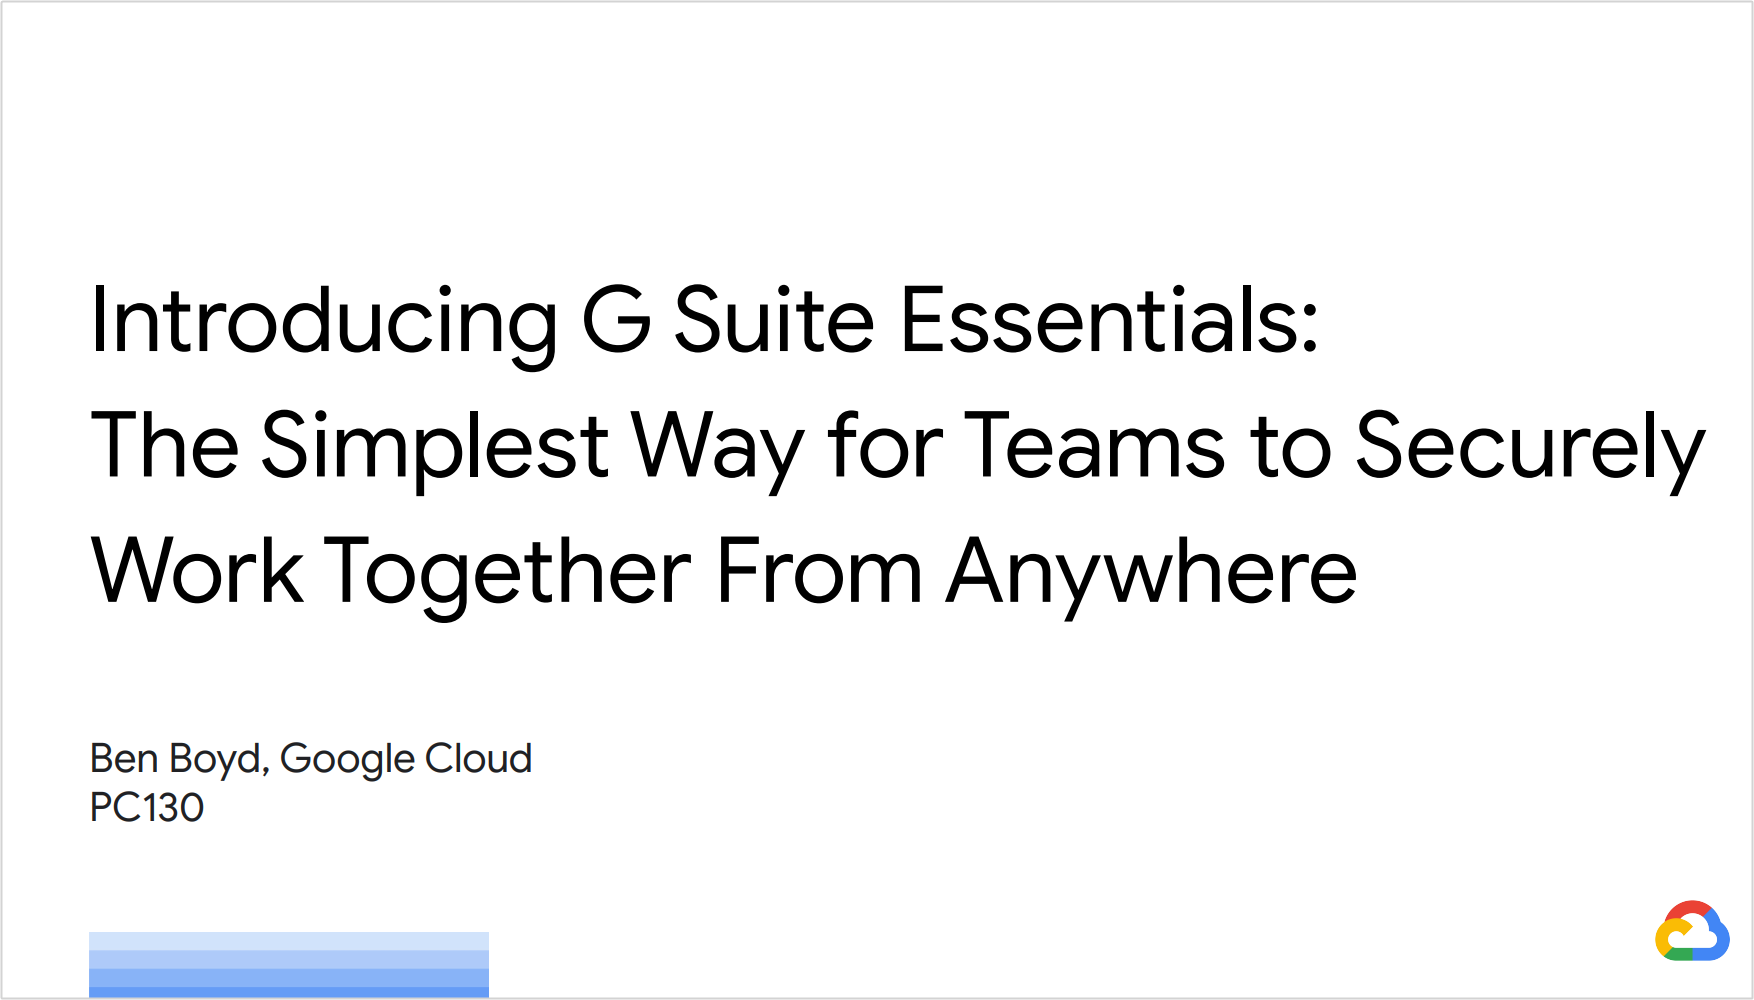 Introducing G Suite Essentials: The Simplest Way for Teams to Securely Work Together from Anywhere